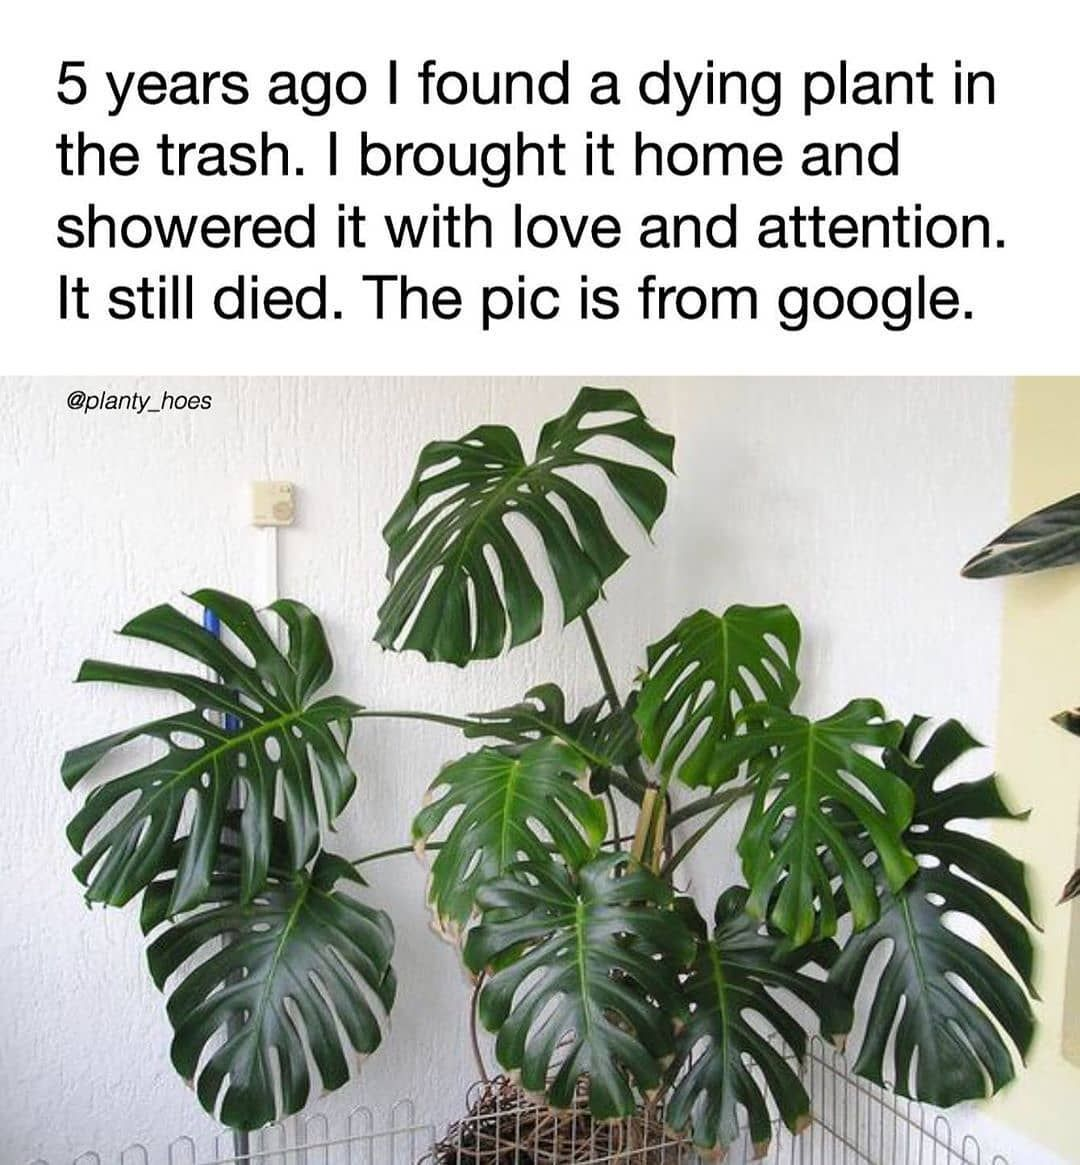 Olivra Homedecor On Instagram Totally Me Hahaha Anyone Can Relate To Giving Your Plants Love And Attention And They St In 2020 Gardening Memes Plants Dying Plants